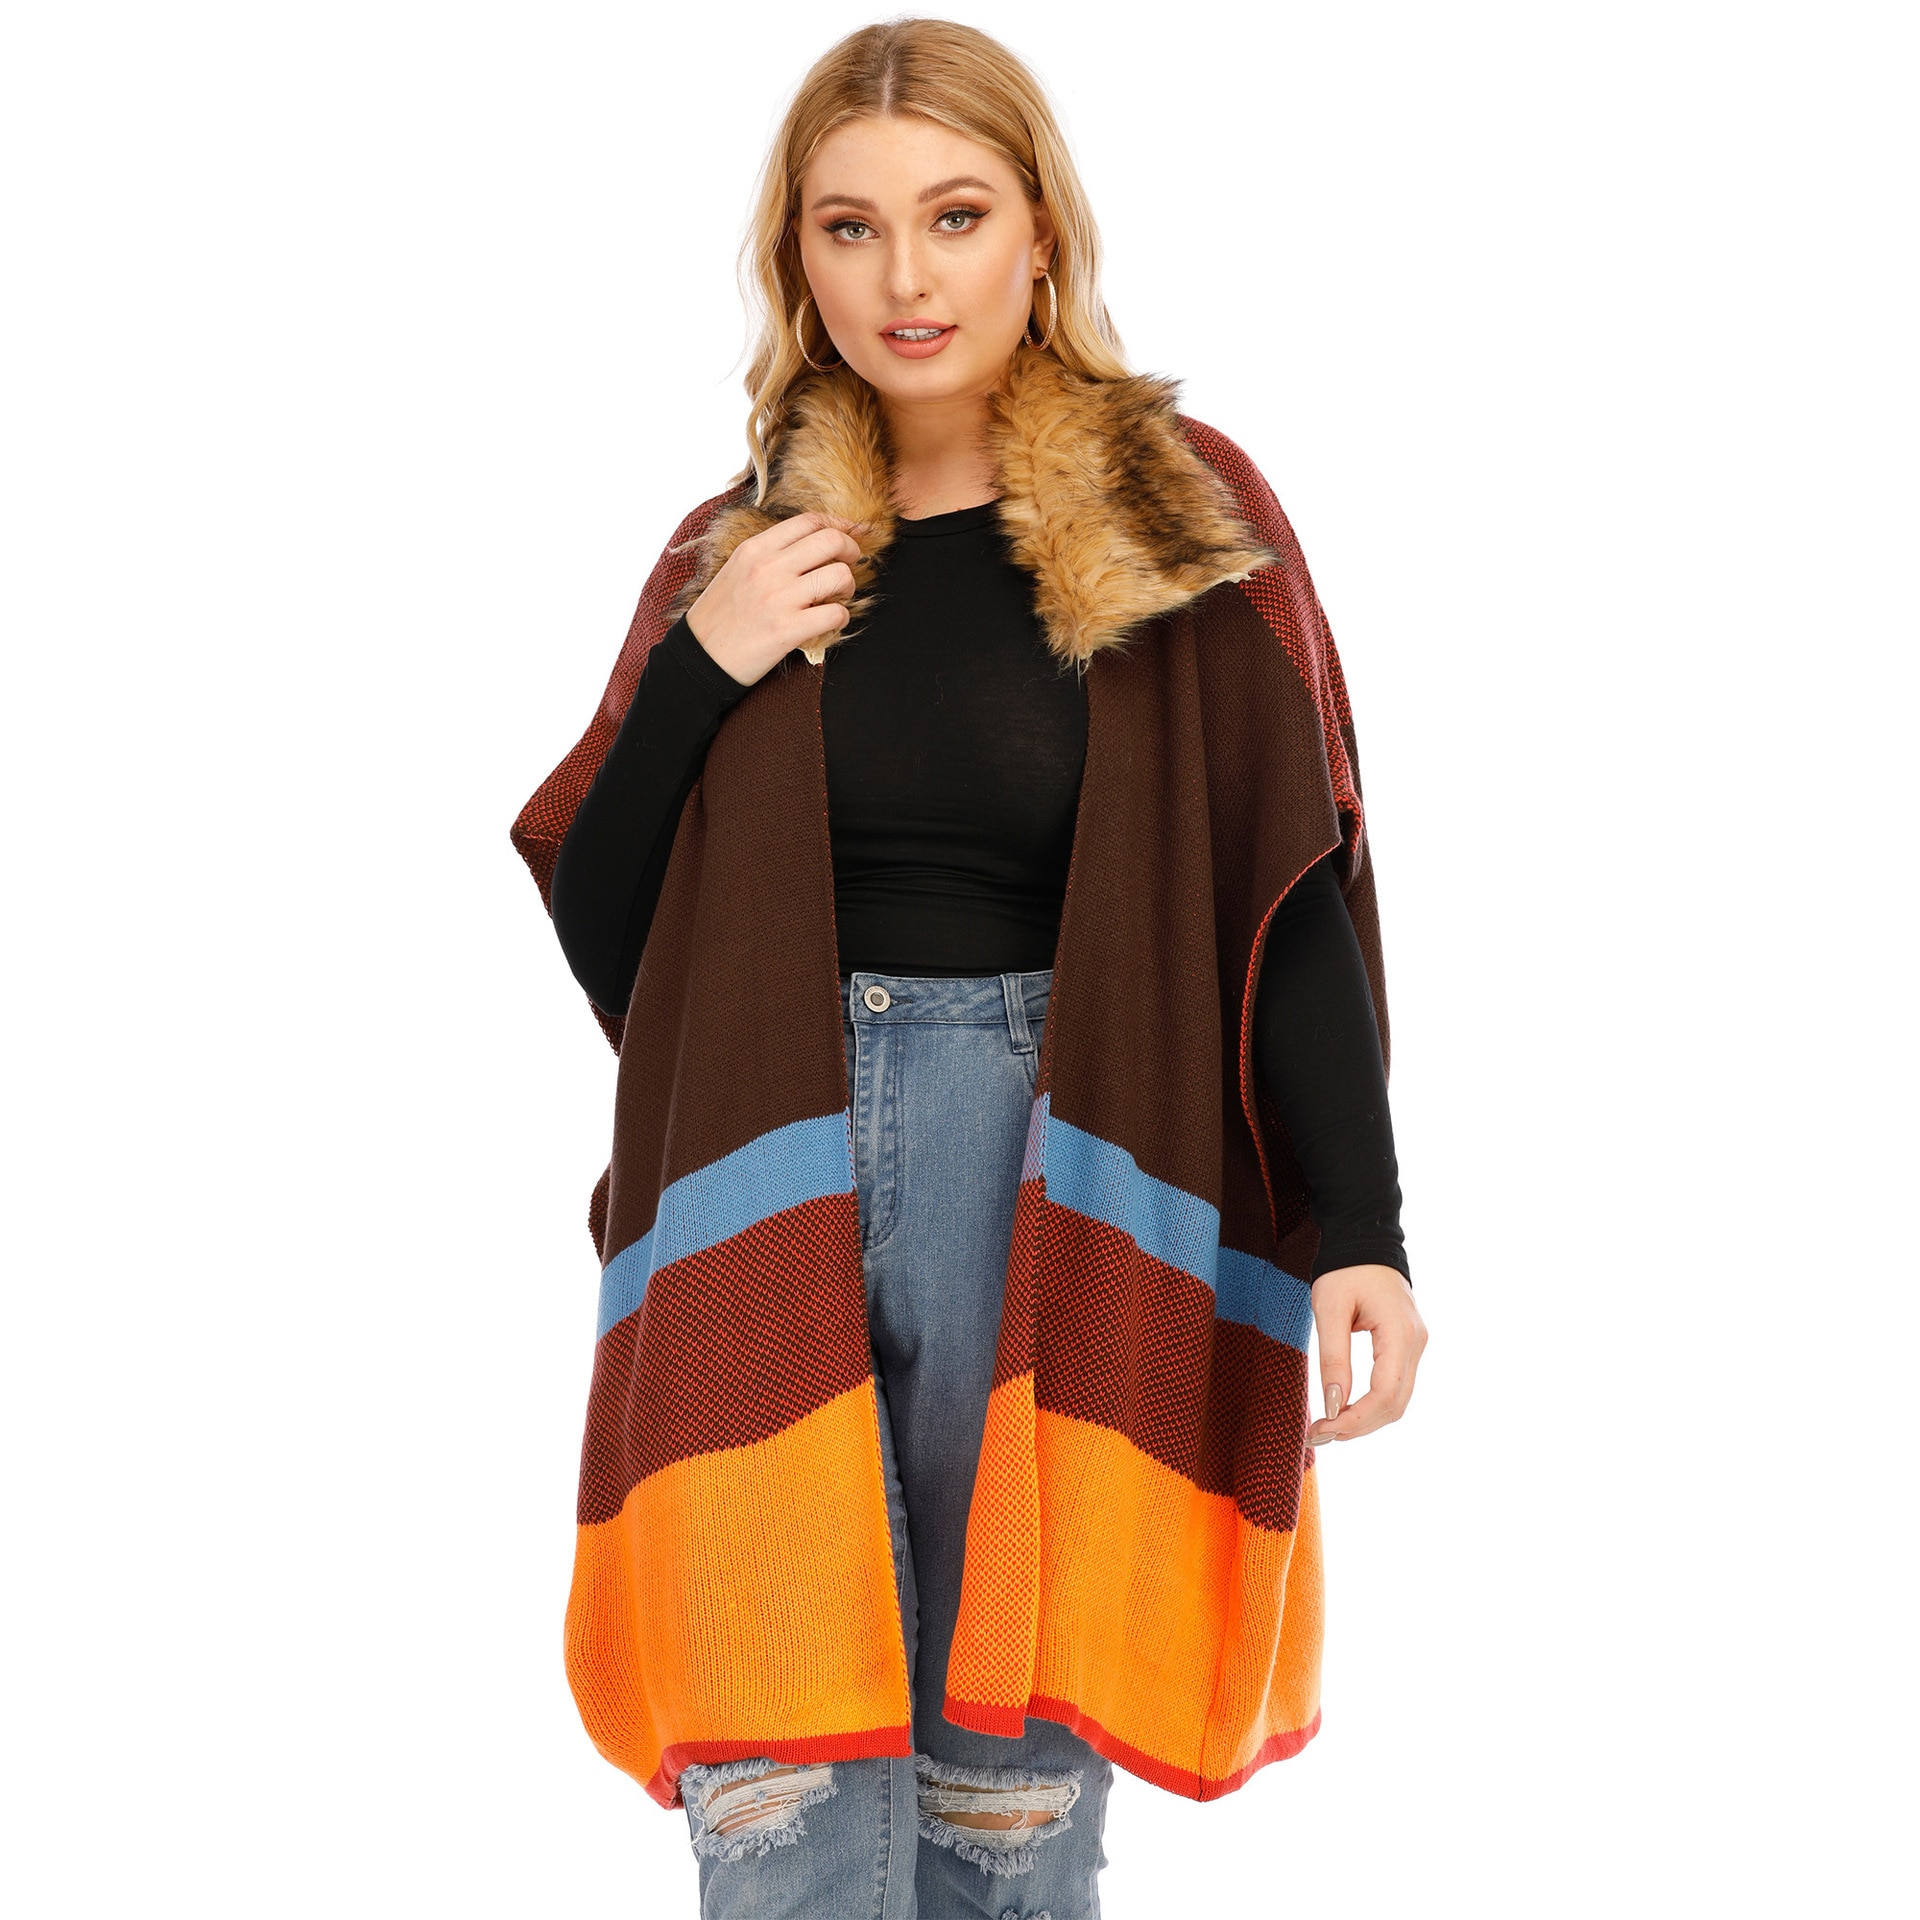 Plus Size Women's Cardigan Clothing Color Striped Stitching Big Fur Collar Fashion Shawl Mid Length Loose Fitting Waist Coat form fitting striped shell dress